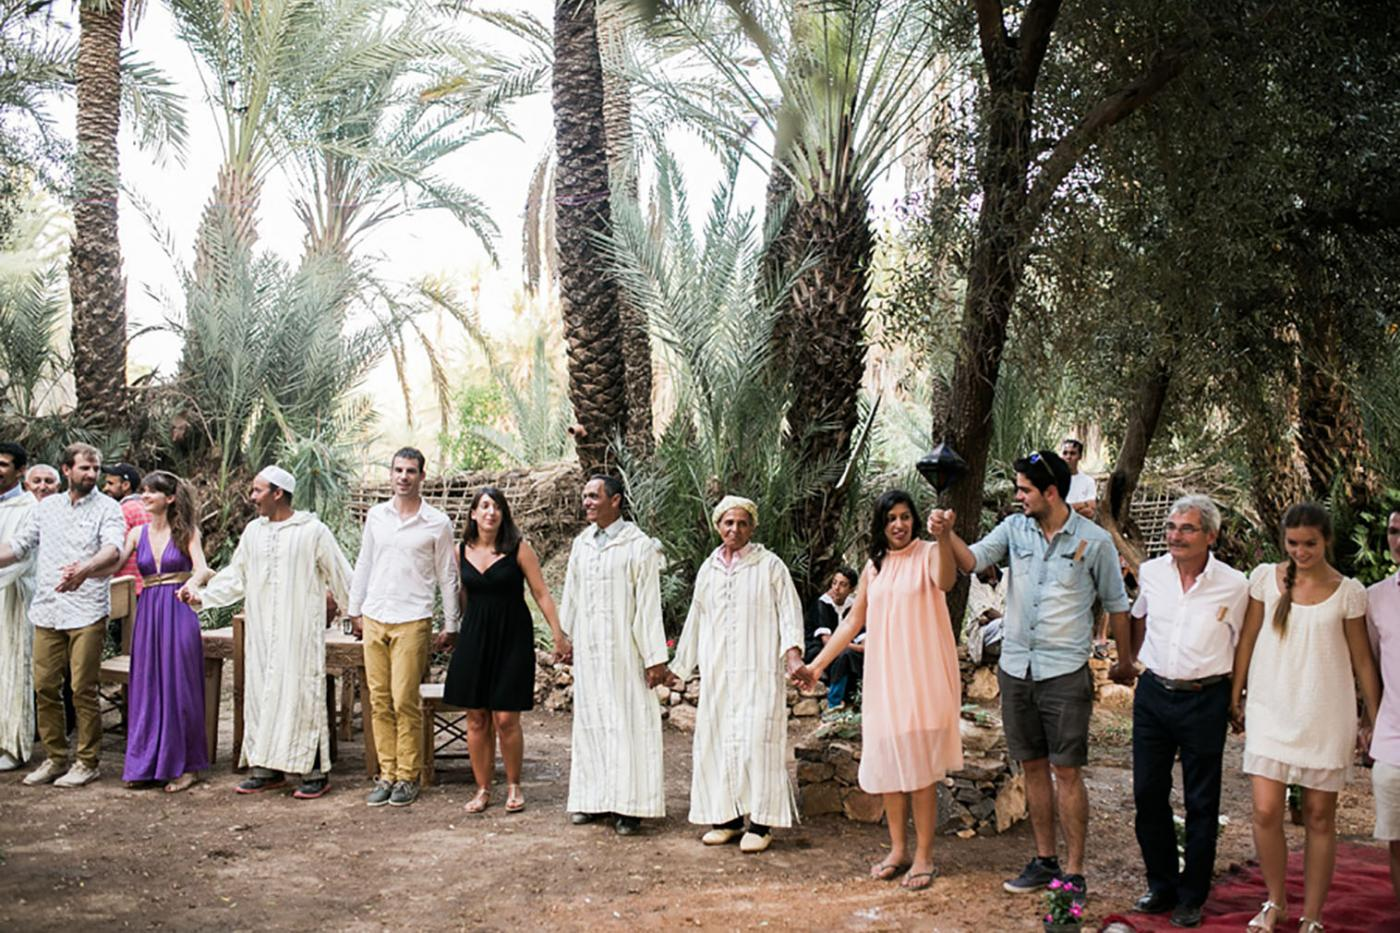 This Destination Jungle Wedding To Morrocco Could Not Have Been Any More Beautiful.